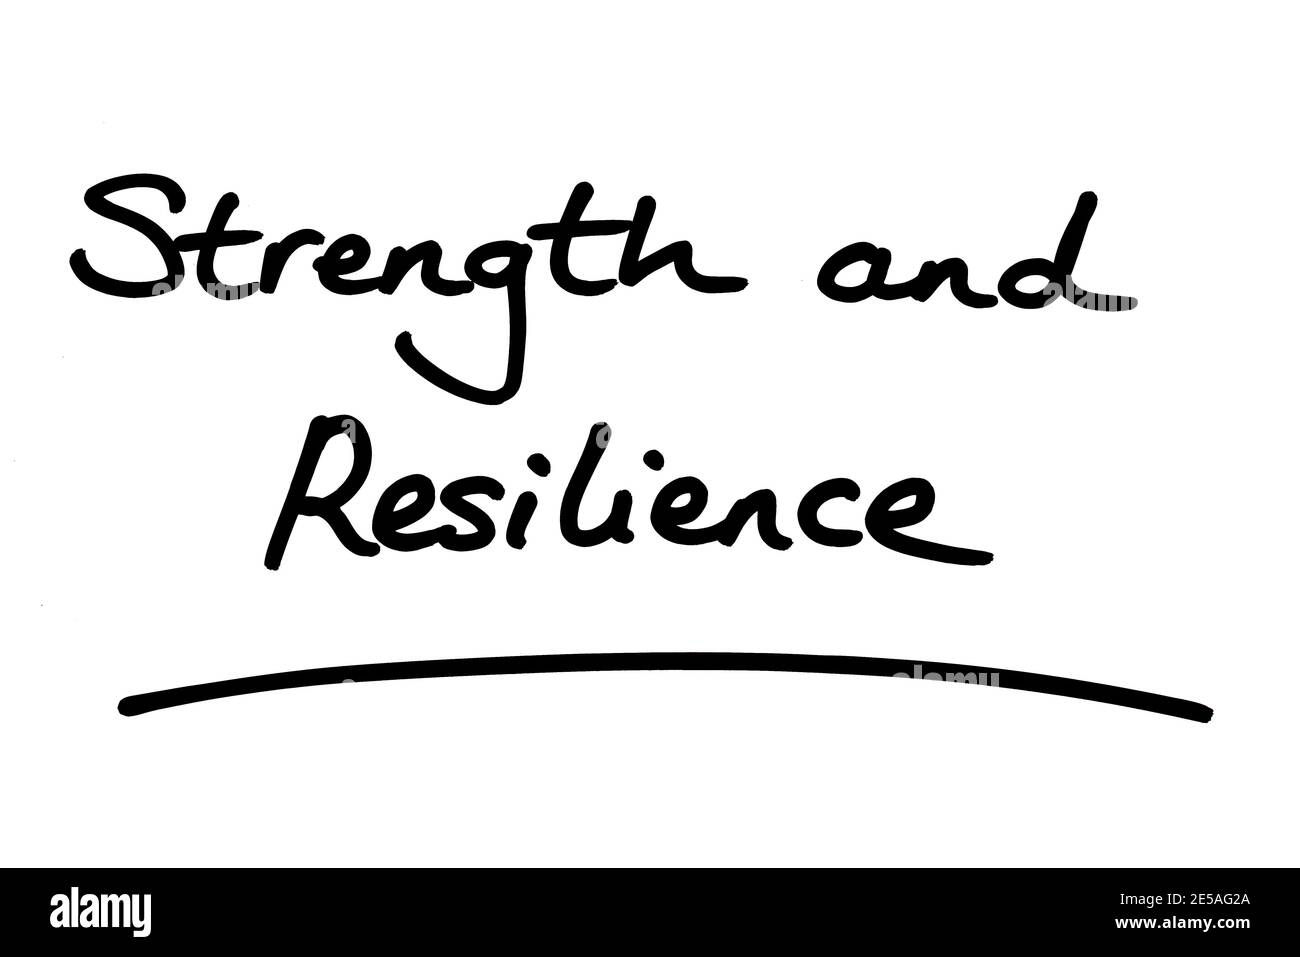 Strength and Resilience, handwritten on a white background. Stock Photo